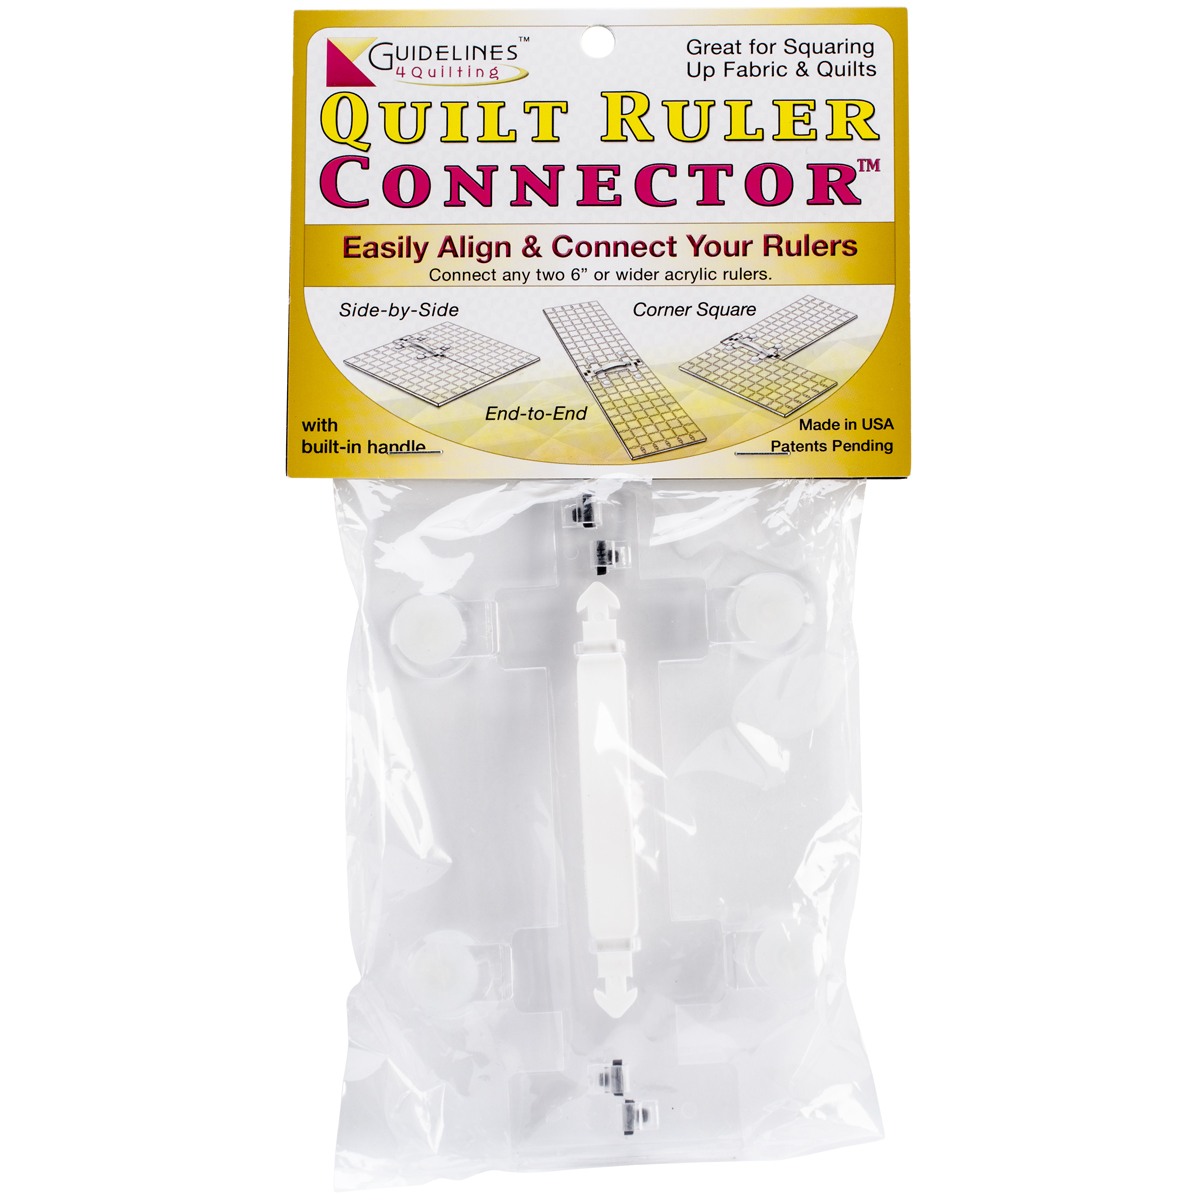 Guidelines4quilting Quilt Ruler Connector - - image 1 de 1